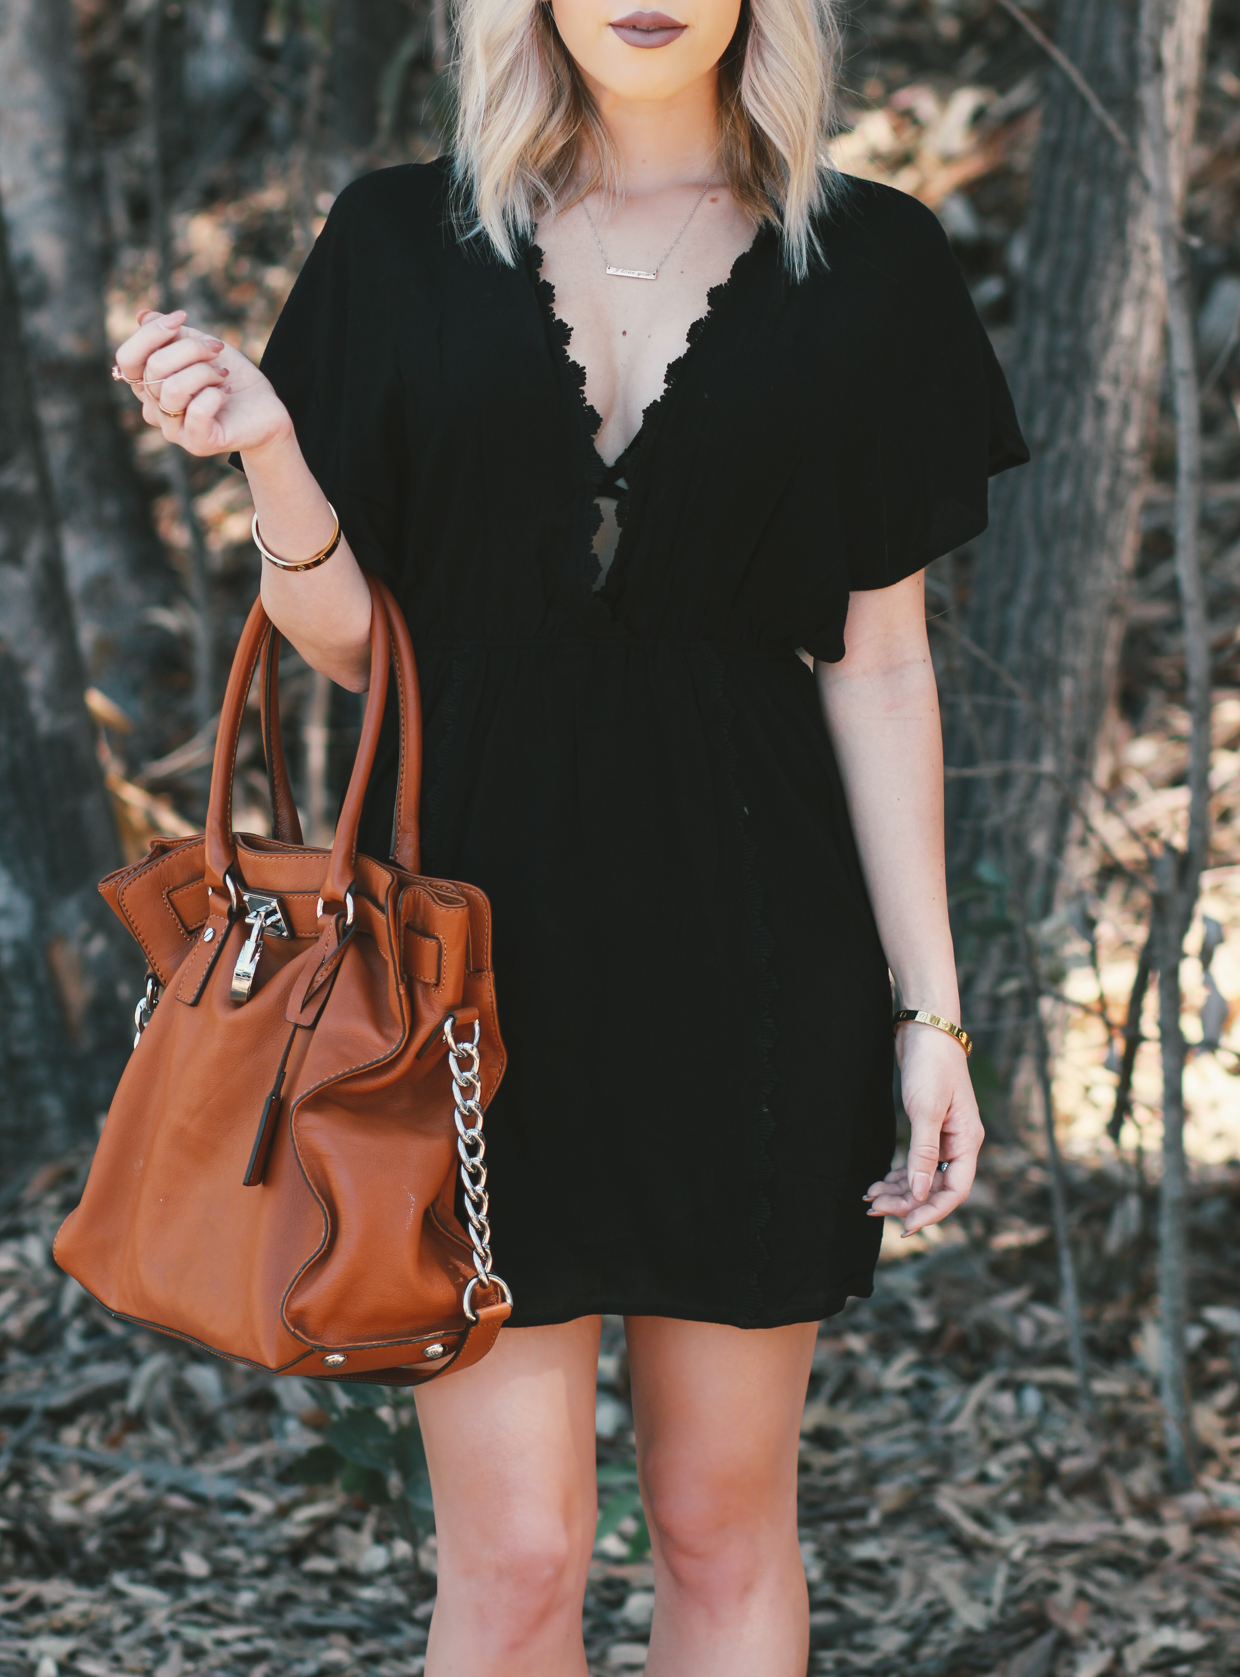 Blondie in the City | Black Beach Cover Up @shoptobi | Camel Michael Kors Bag